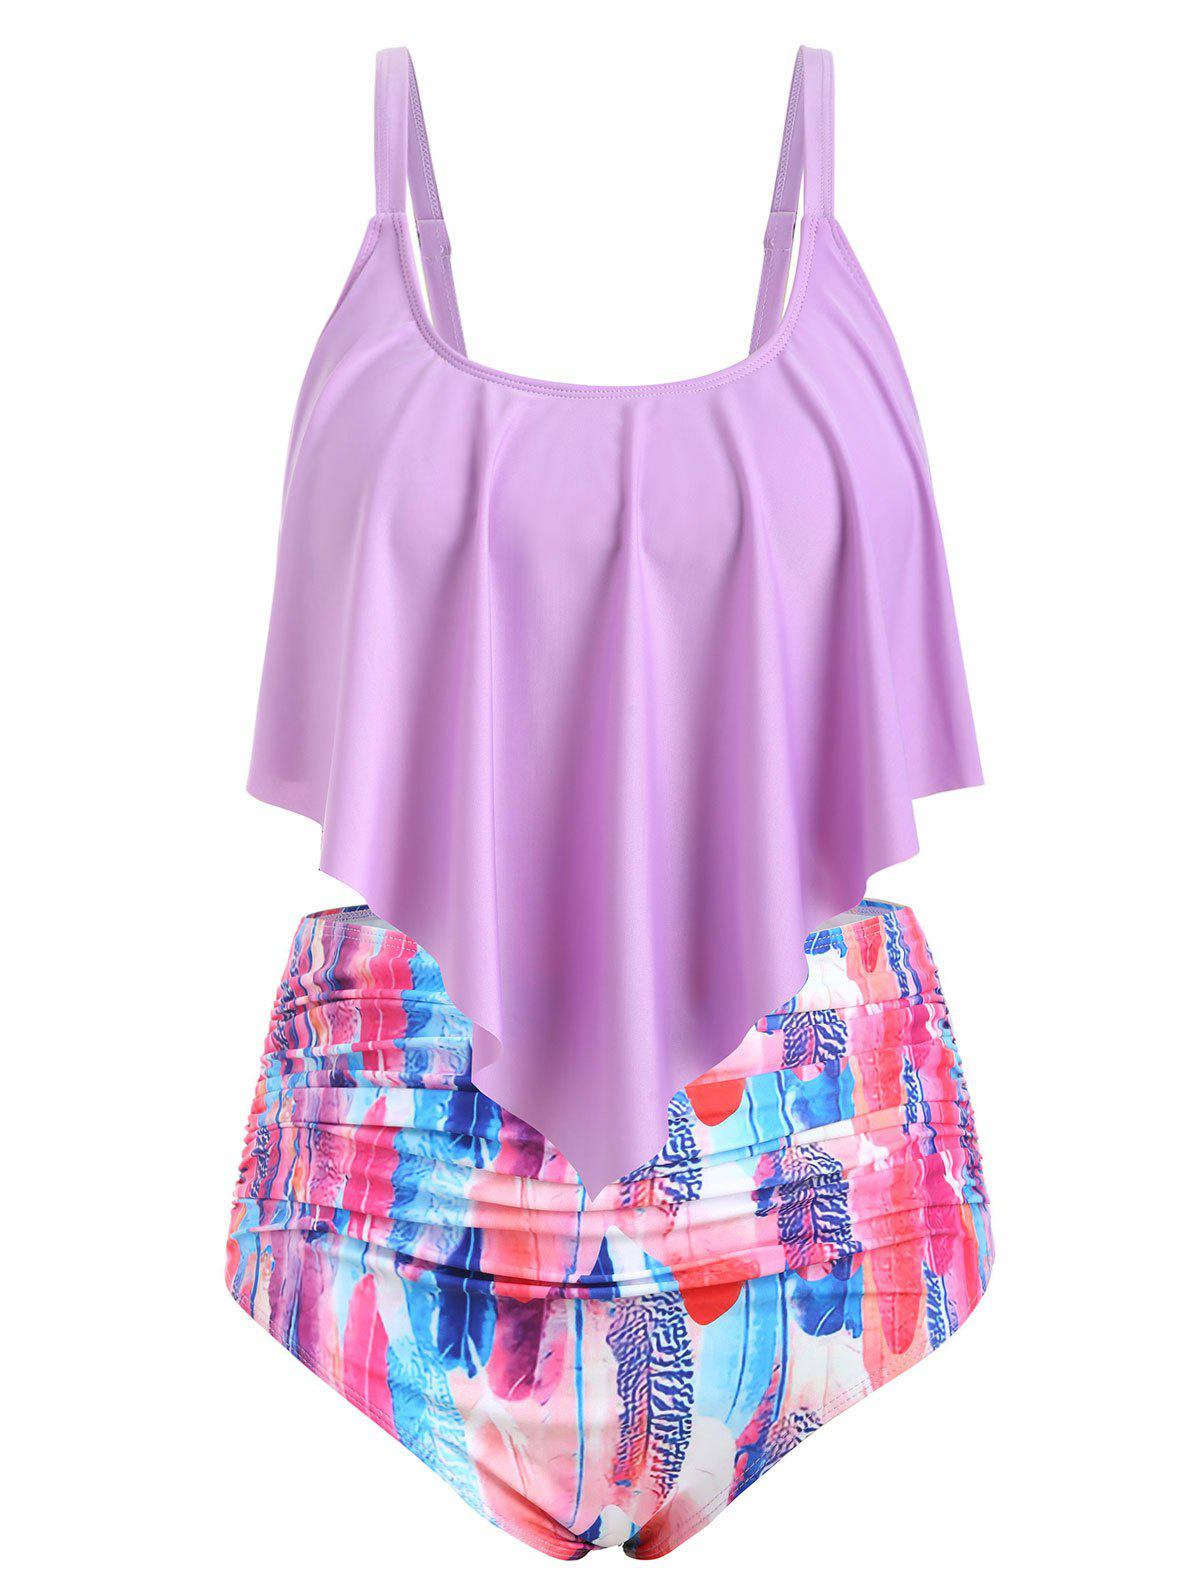 Plus Size Splatter Paint Overlay Ruched Tankini Swimsuit - multicolor F 3X